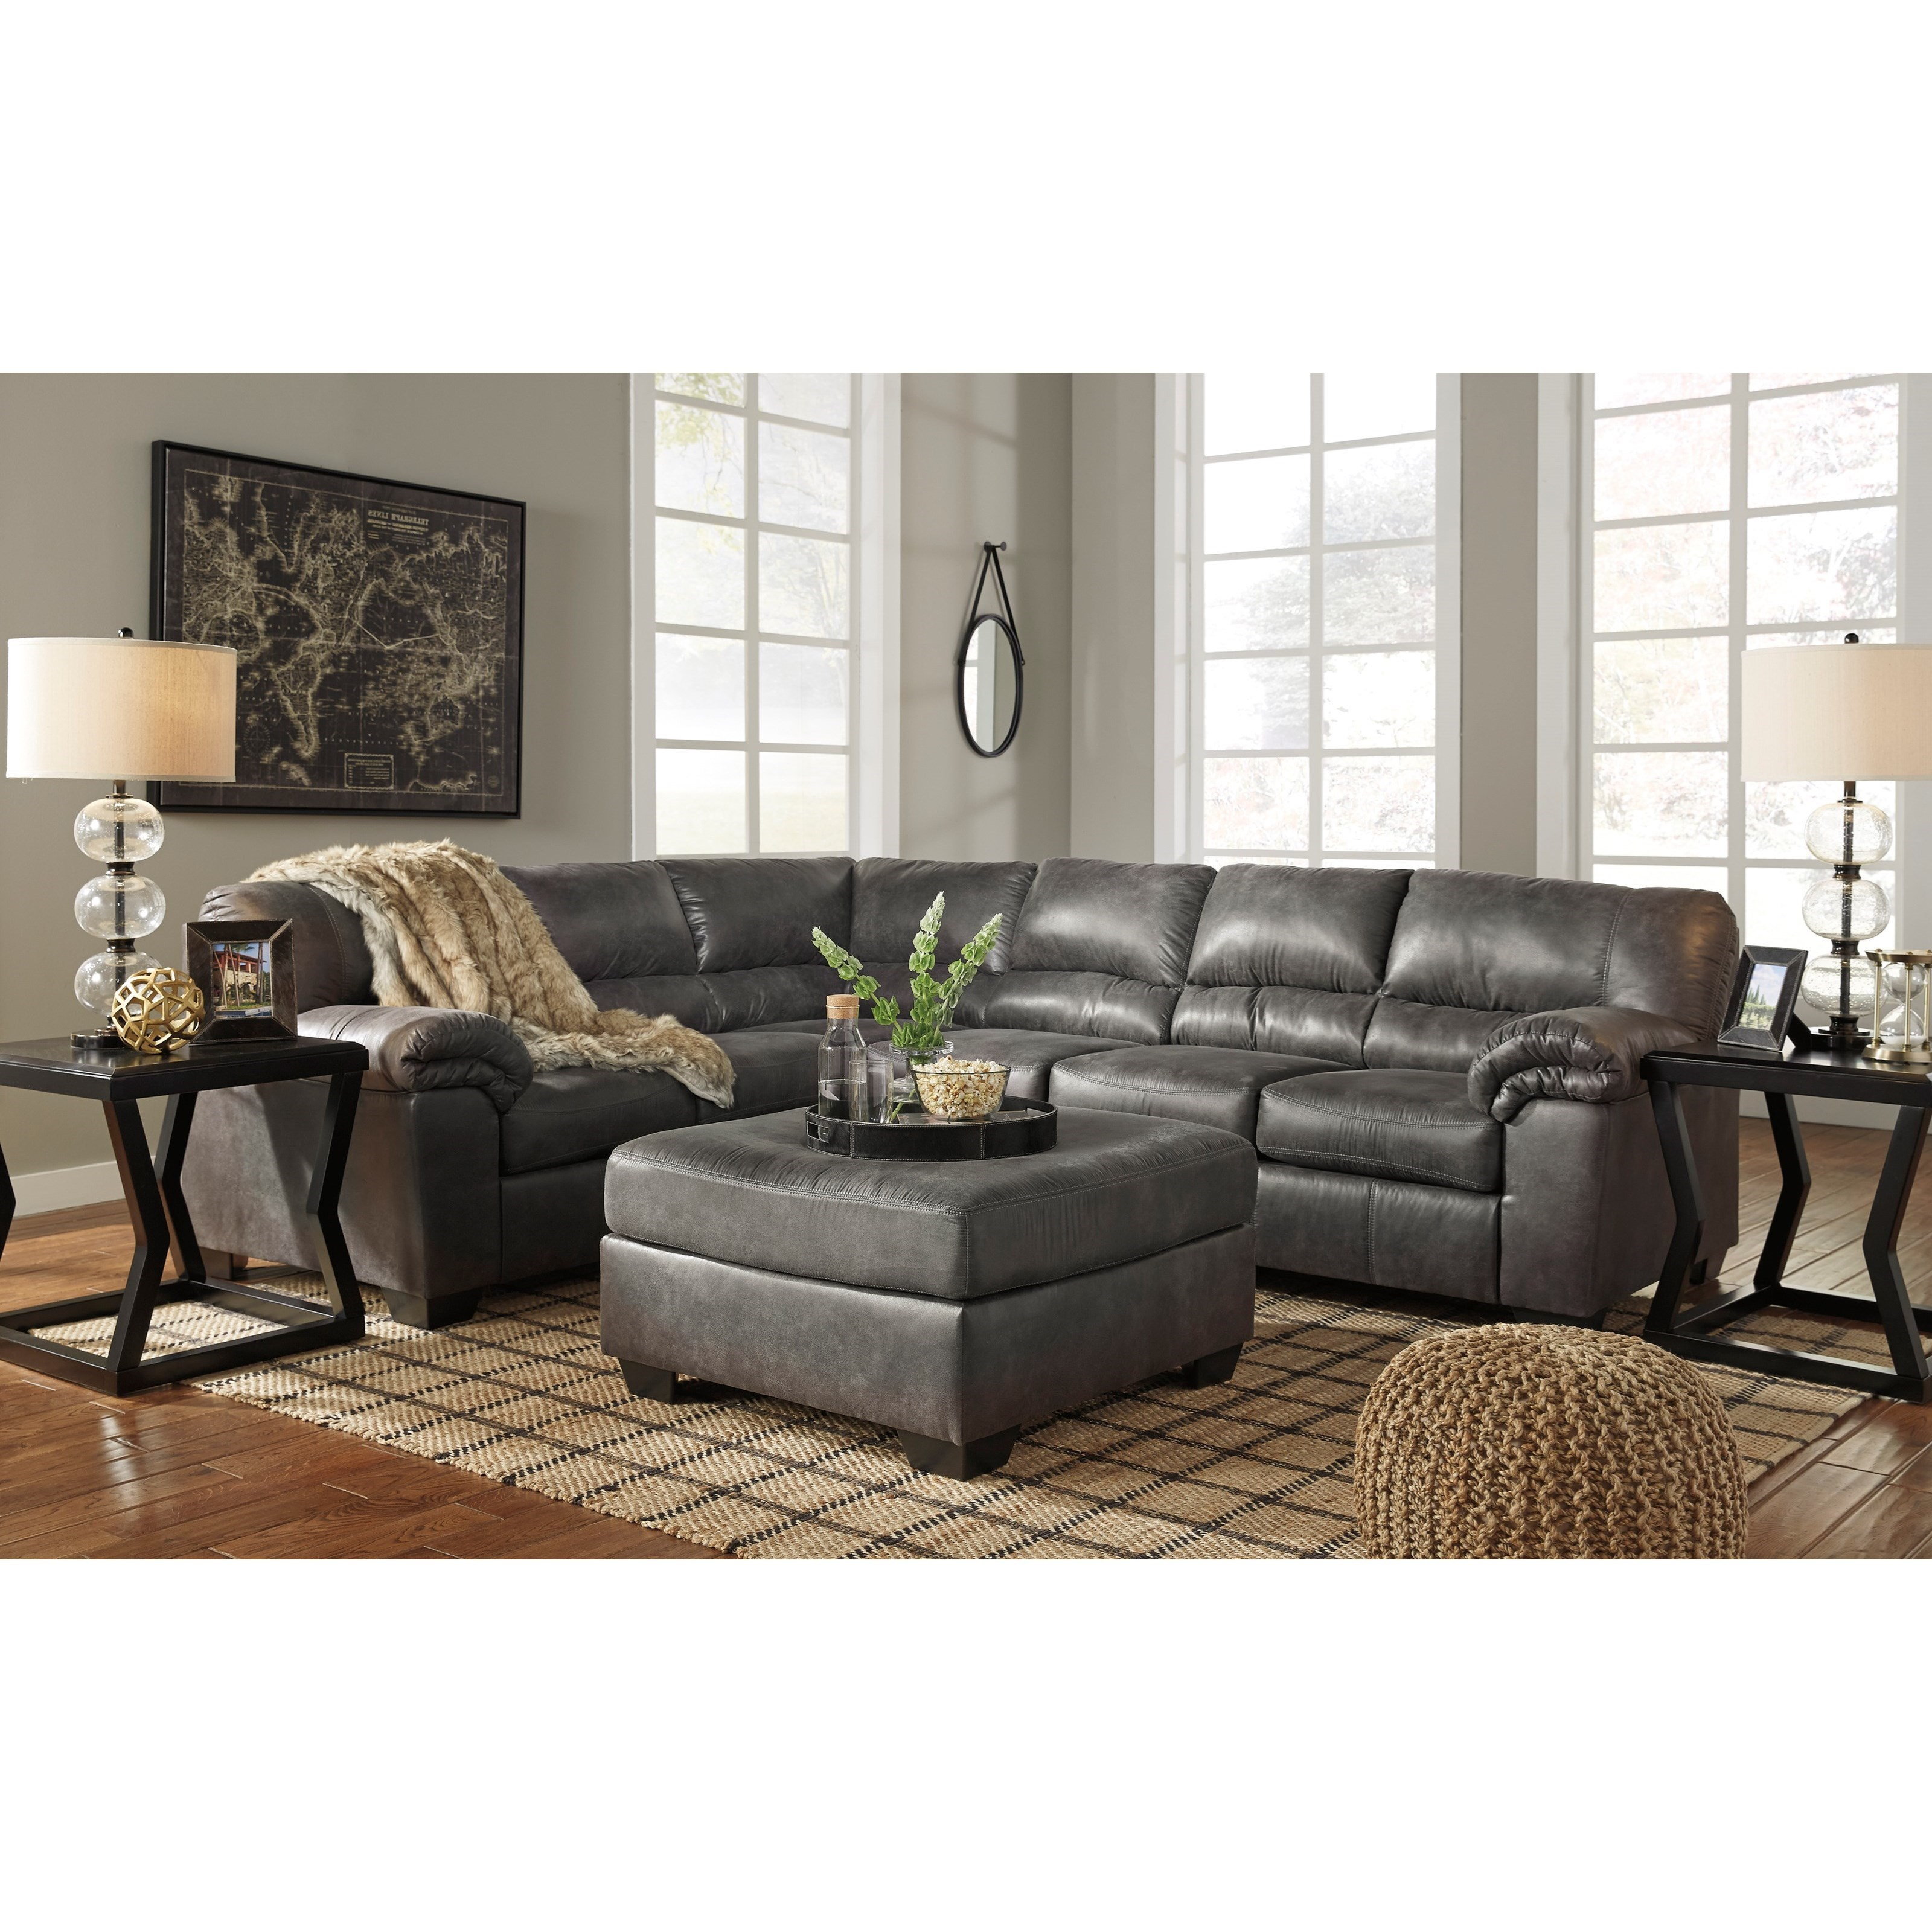 Signature Design By Ashley Bladen 3 Piece Faux Leather Sectional Household Furniture